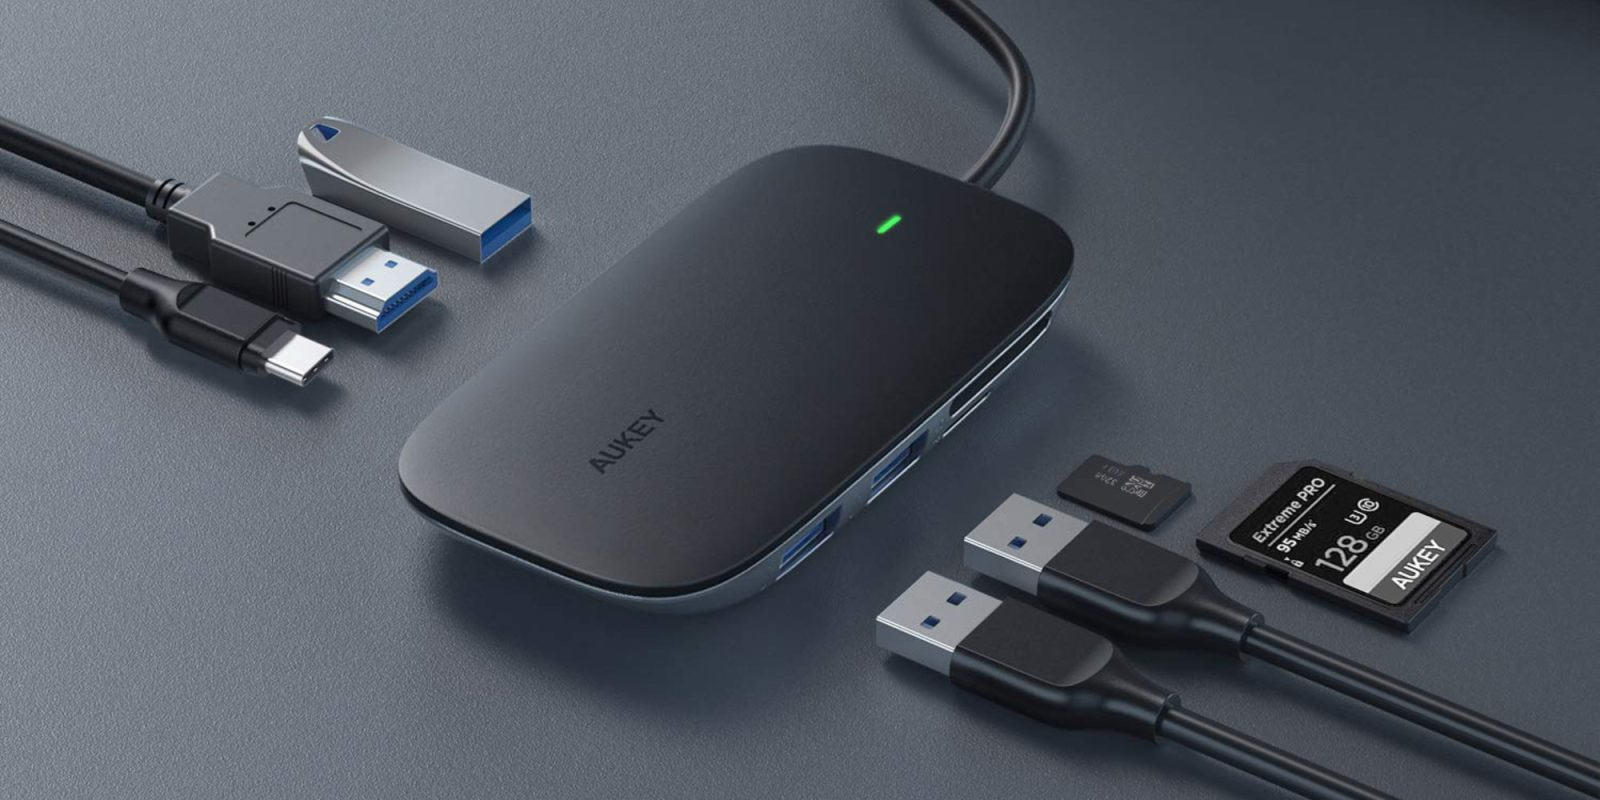 Add Aukey's 7-in-1 USB-C hub with power delivery to your Mac at $25 (Save 50%)